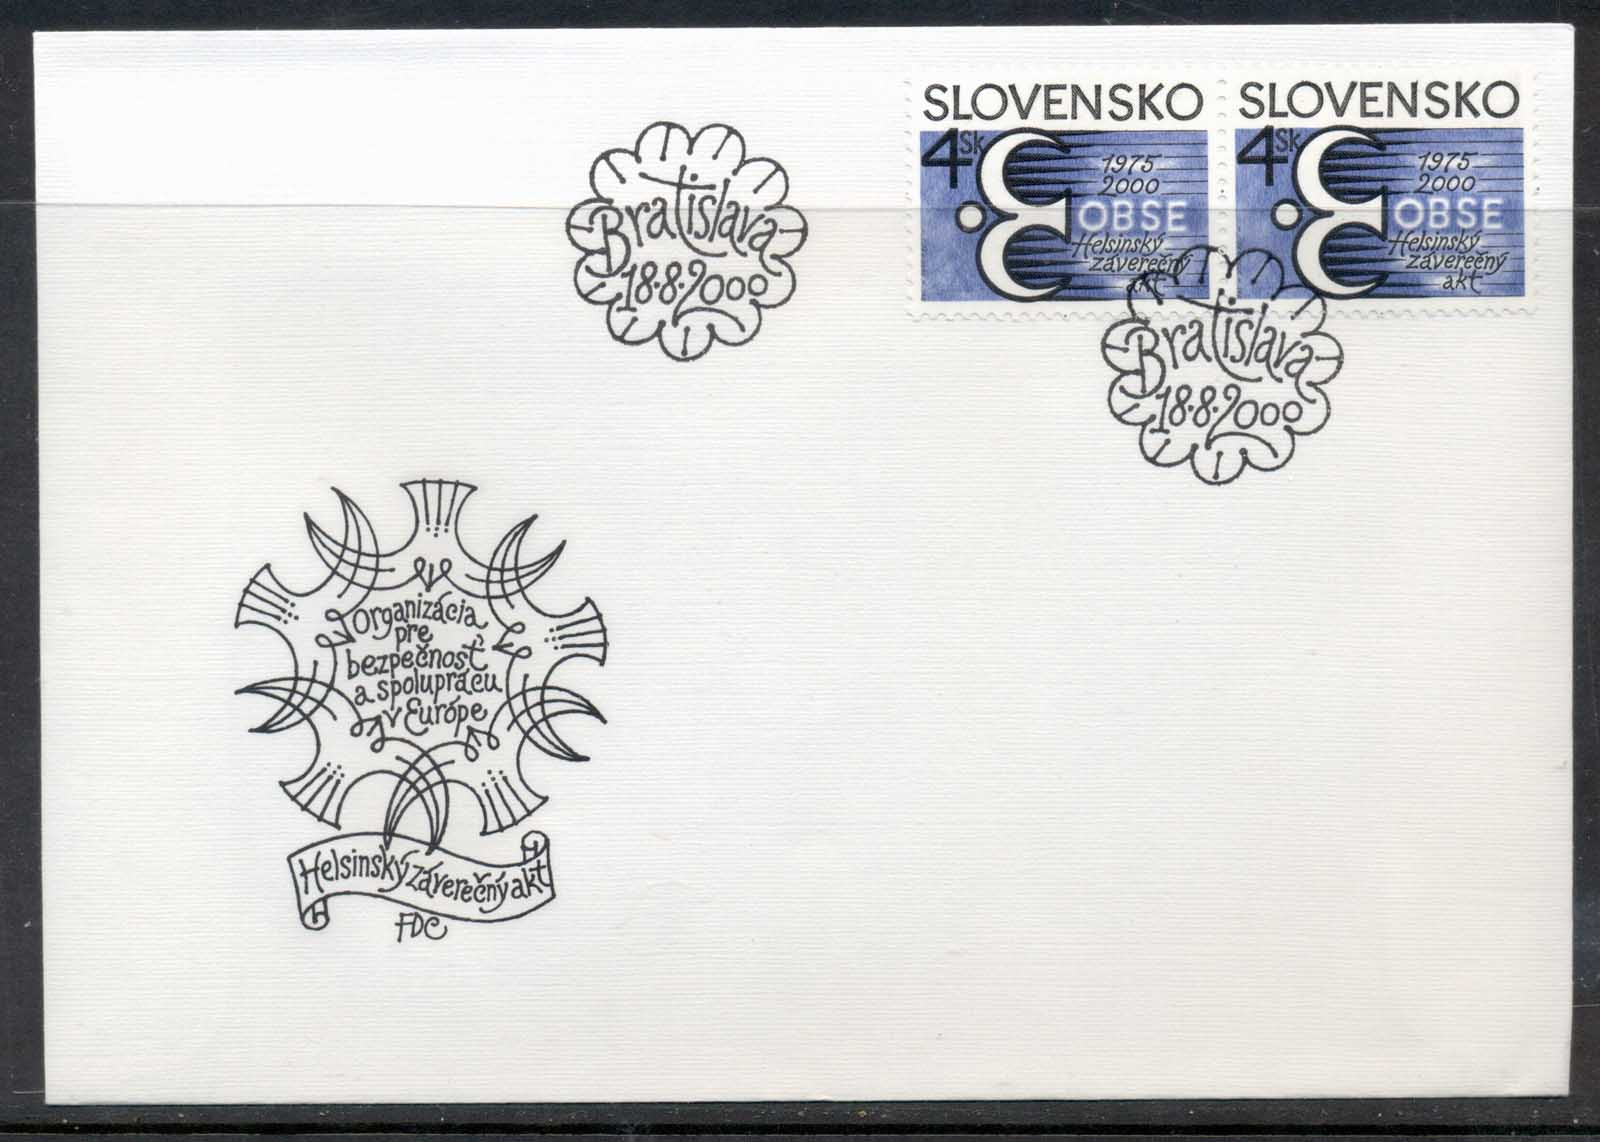 Slovakia 2000 OSCE European Security & Cooperation Conference FDC